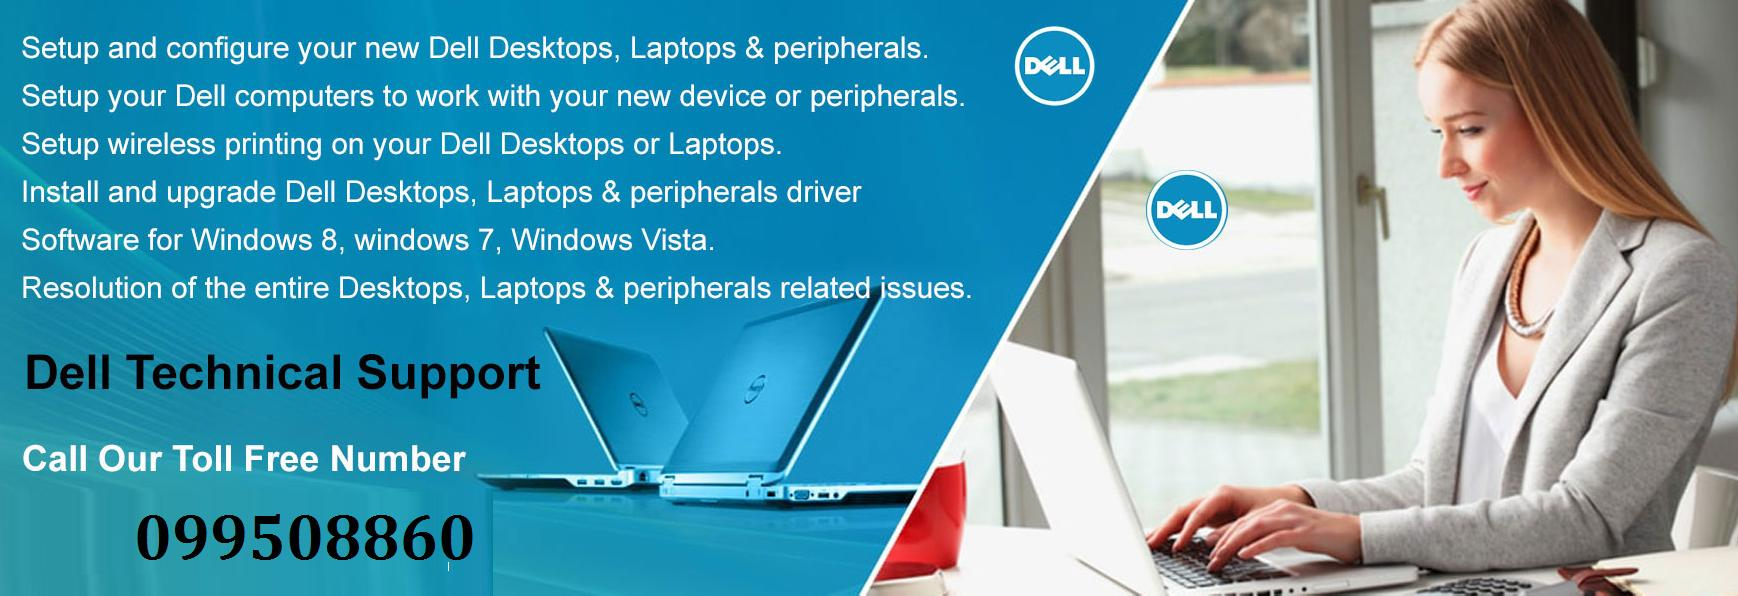 Get Instant Dell Support via Toll-Free Number NZ 099508860